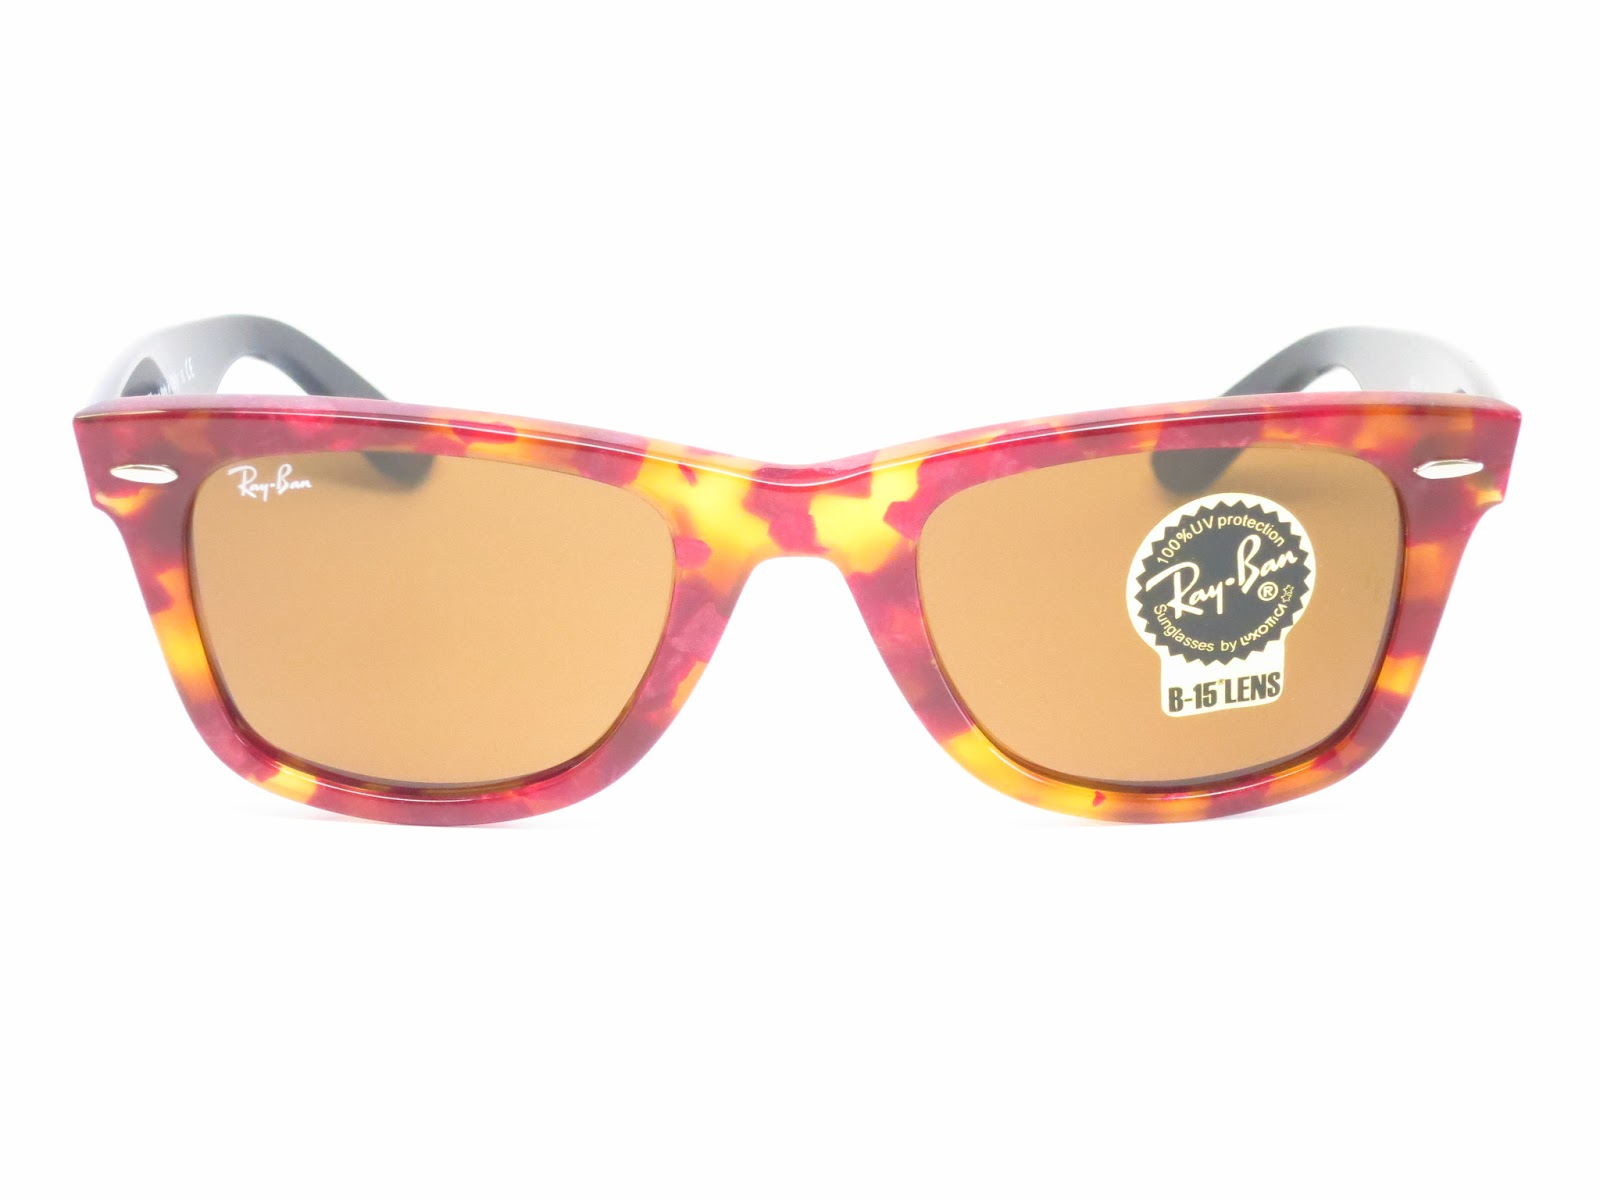 5df9691399 Ray Ban Orb 3387 « One More Soul